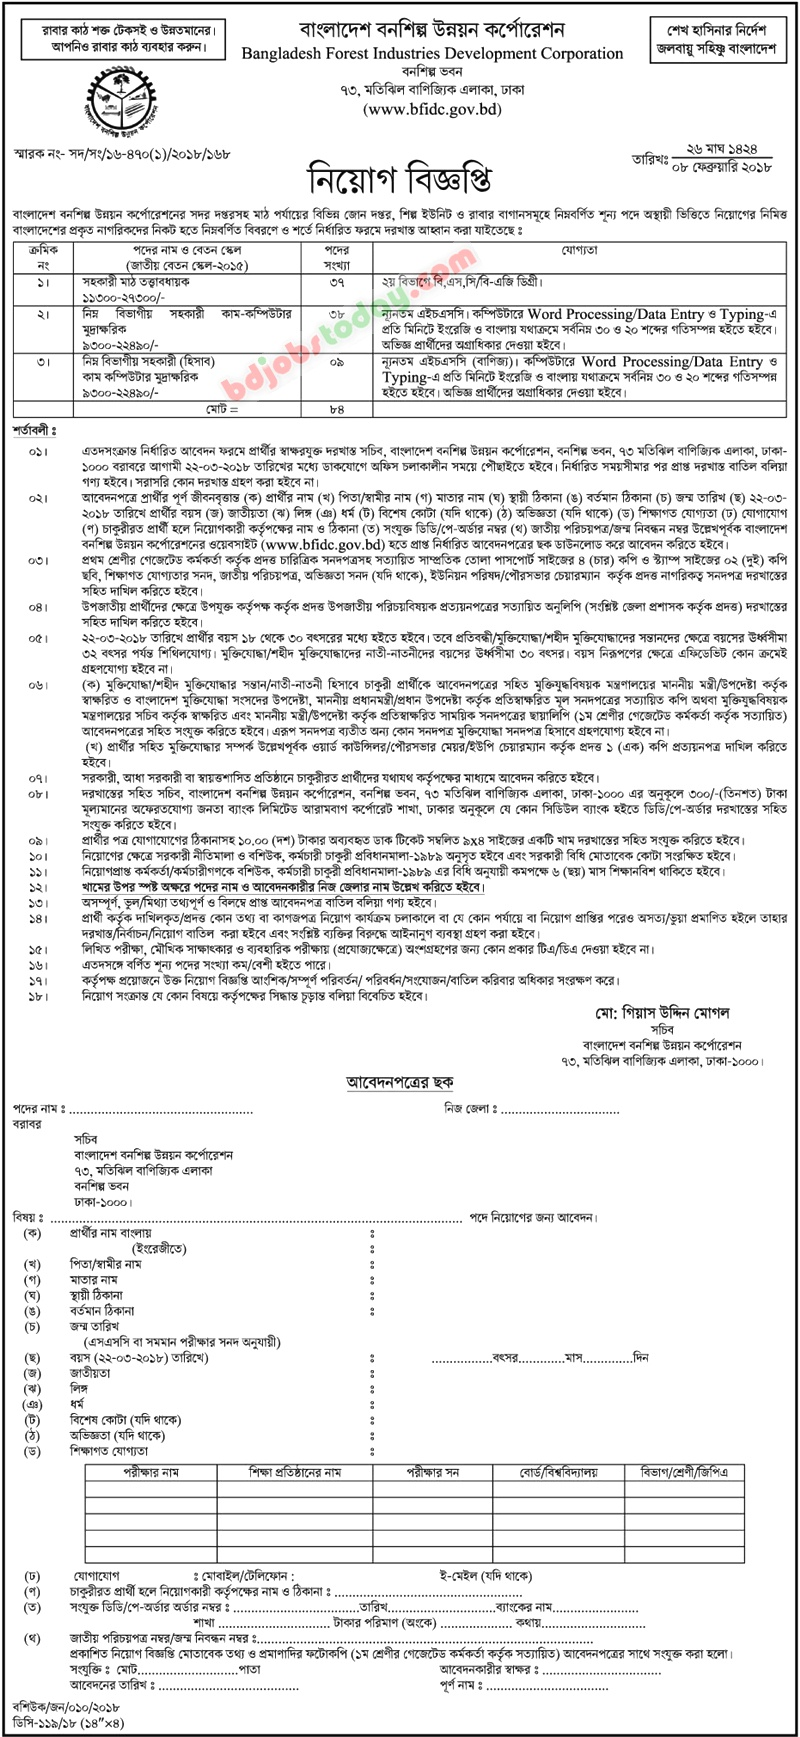 Bangladesh Forest Industries Development Corporation-BFIDC jobs